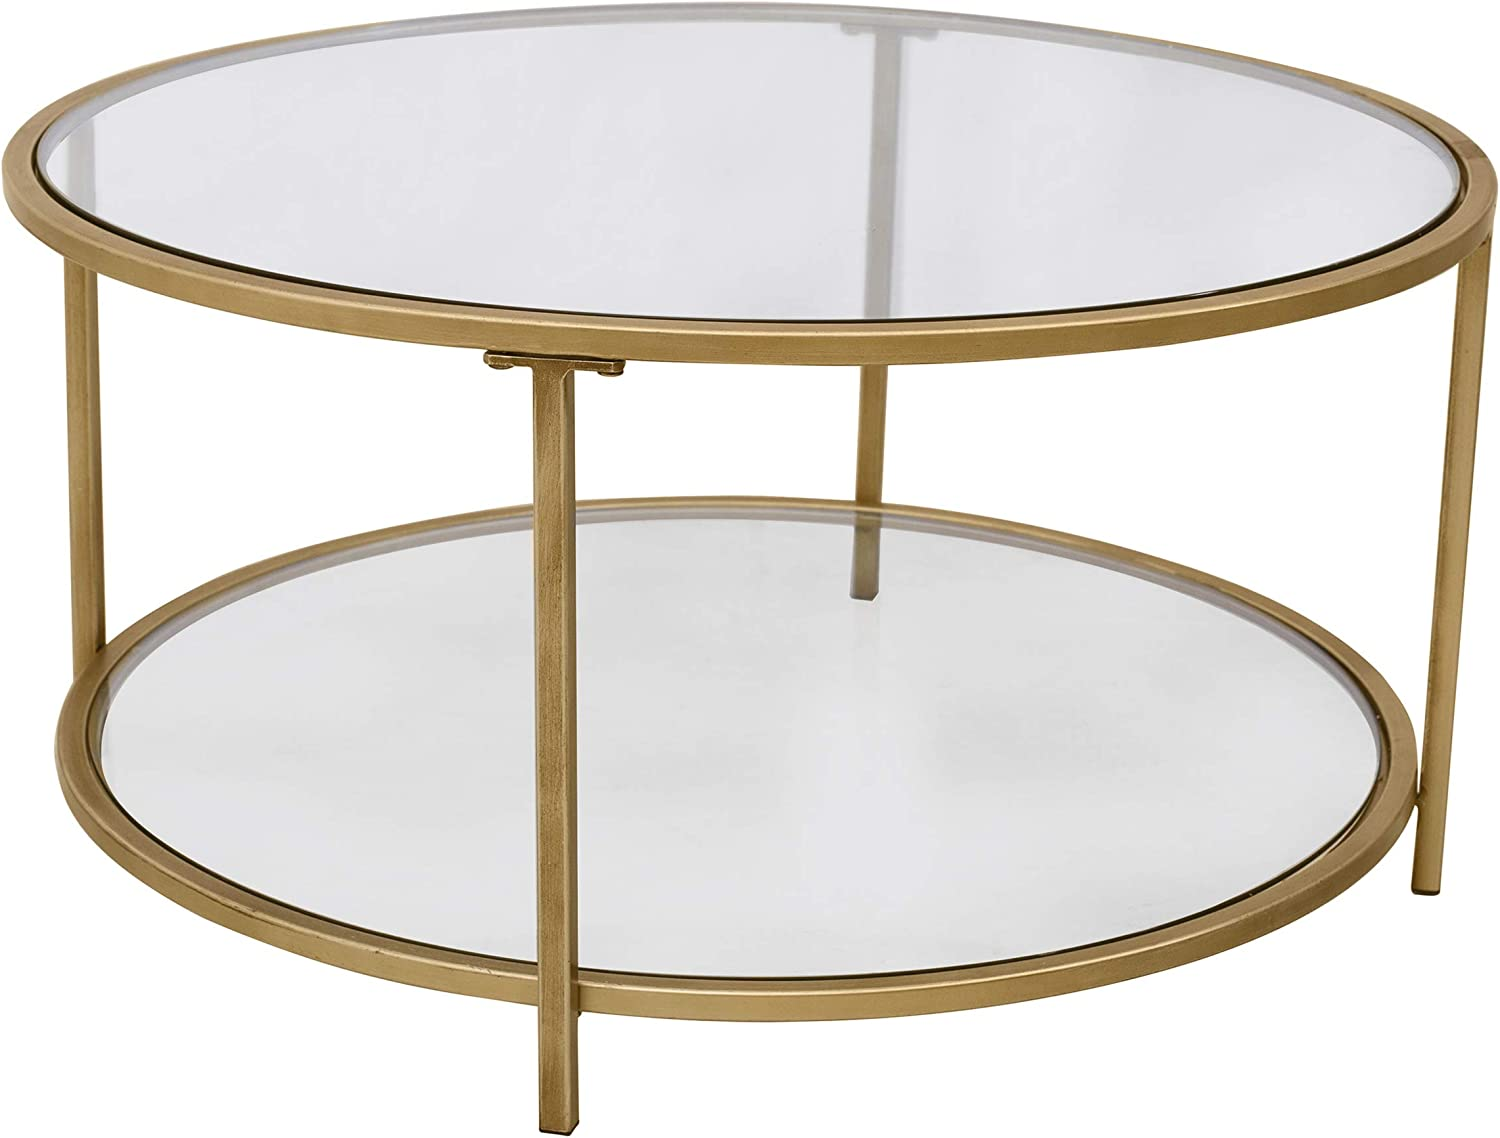 Ravenna Home Parker Round Shelf Storage Coffee Table 31 5 W